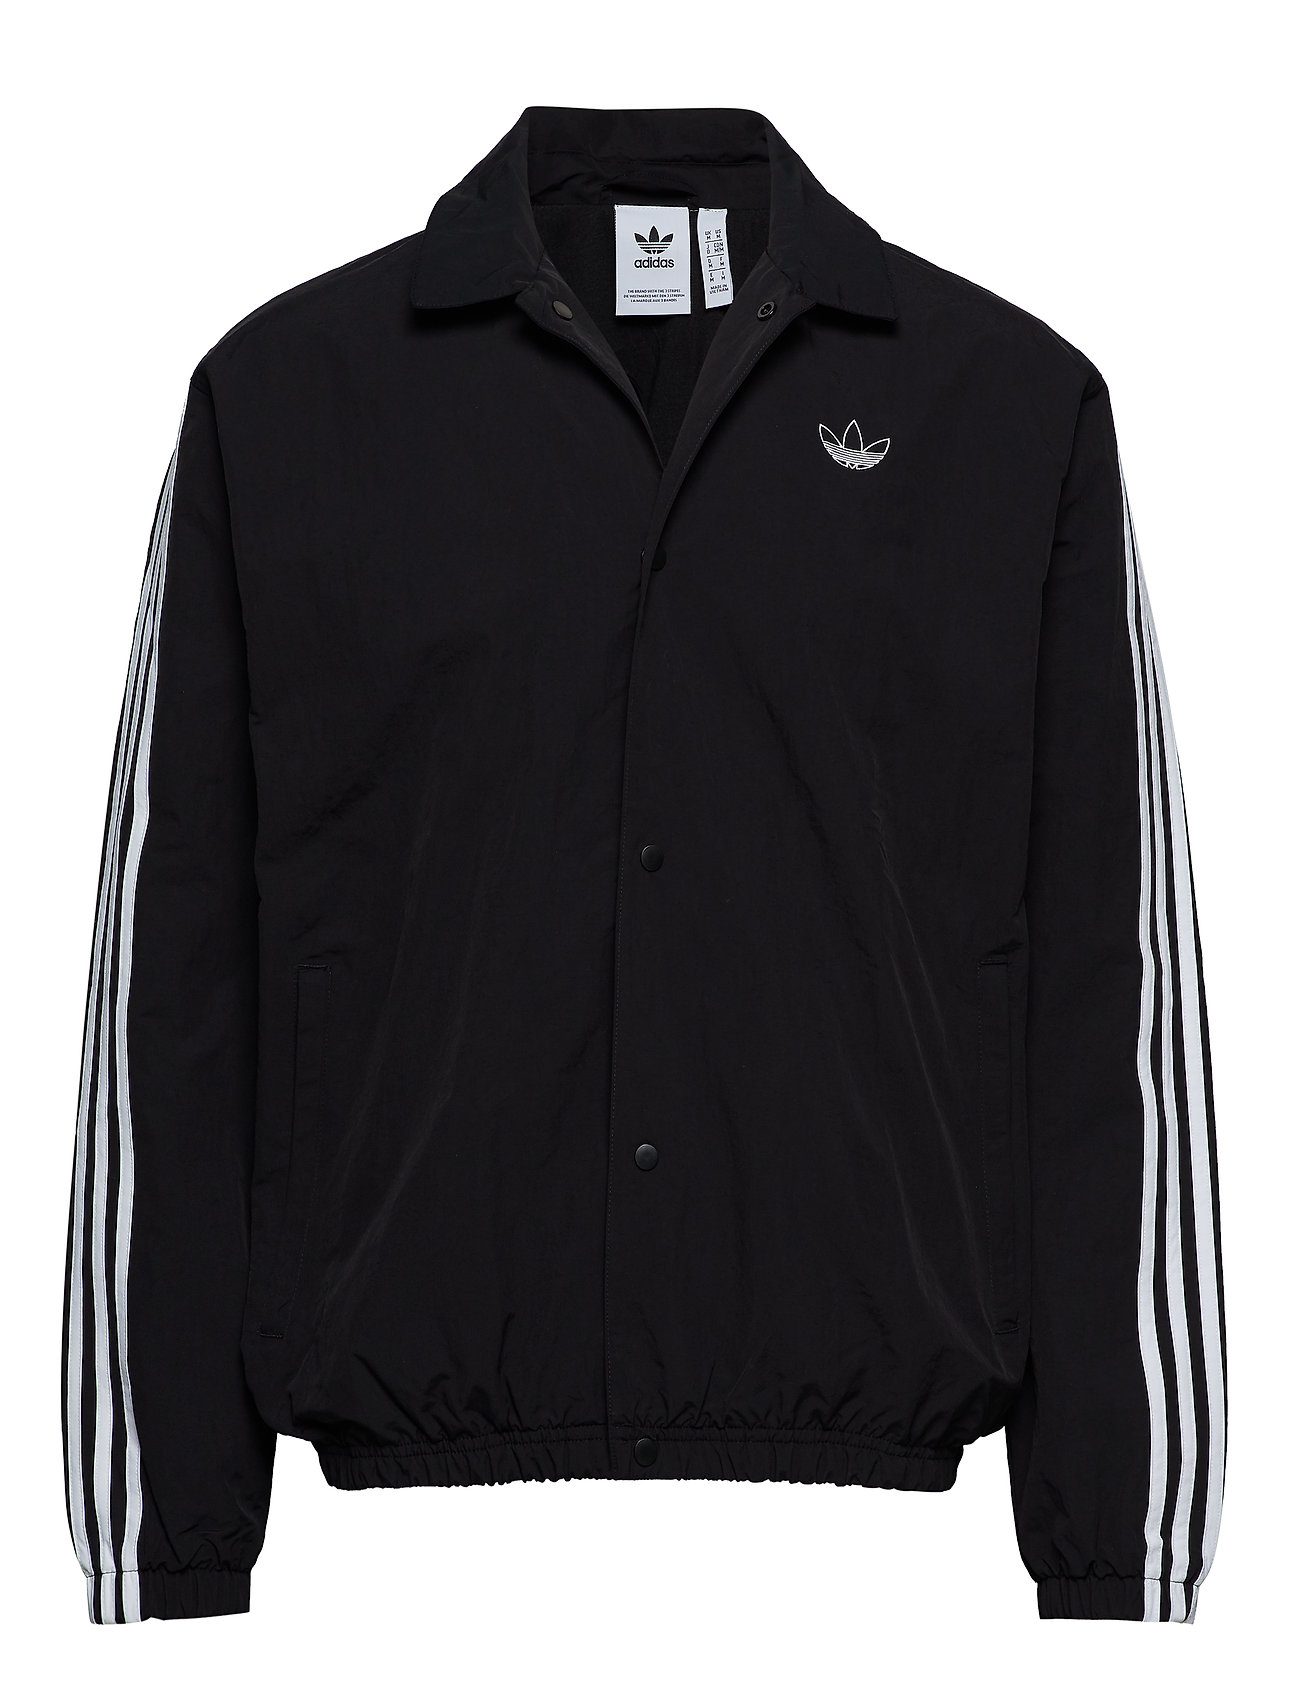 Adidas Trefoil Coach Jacket Black | END.